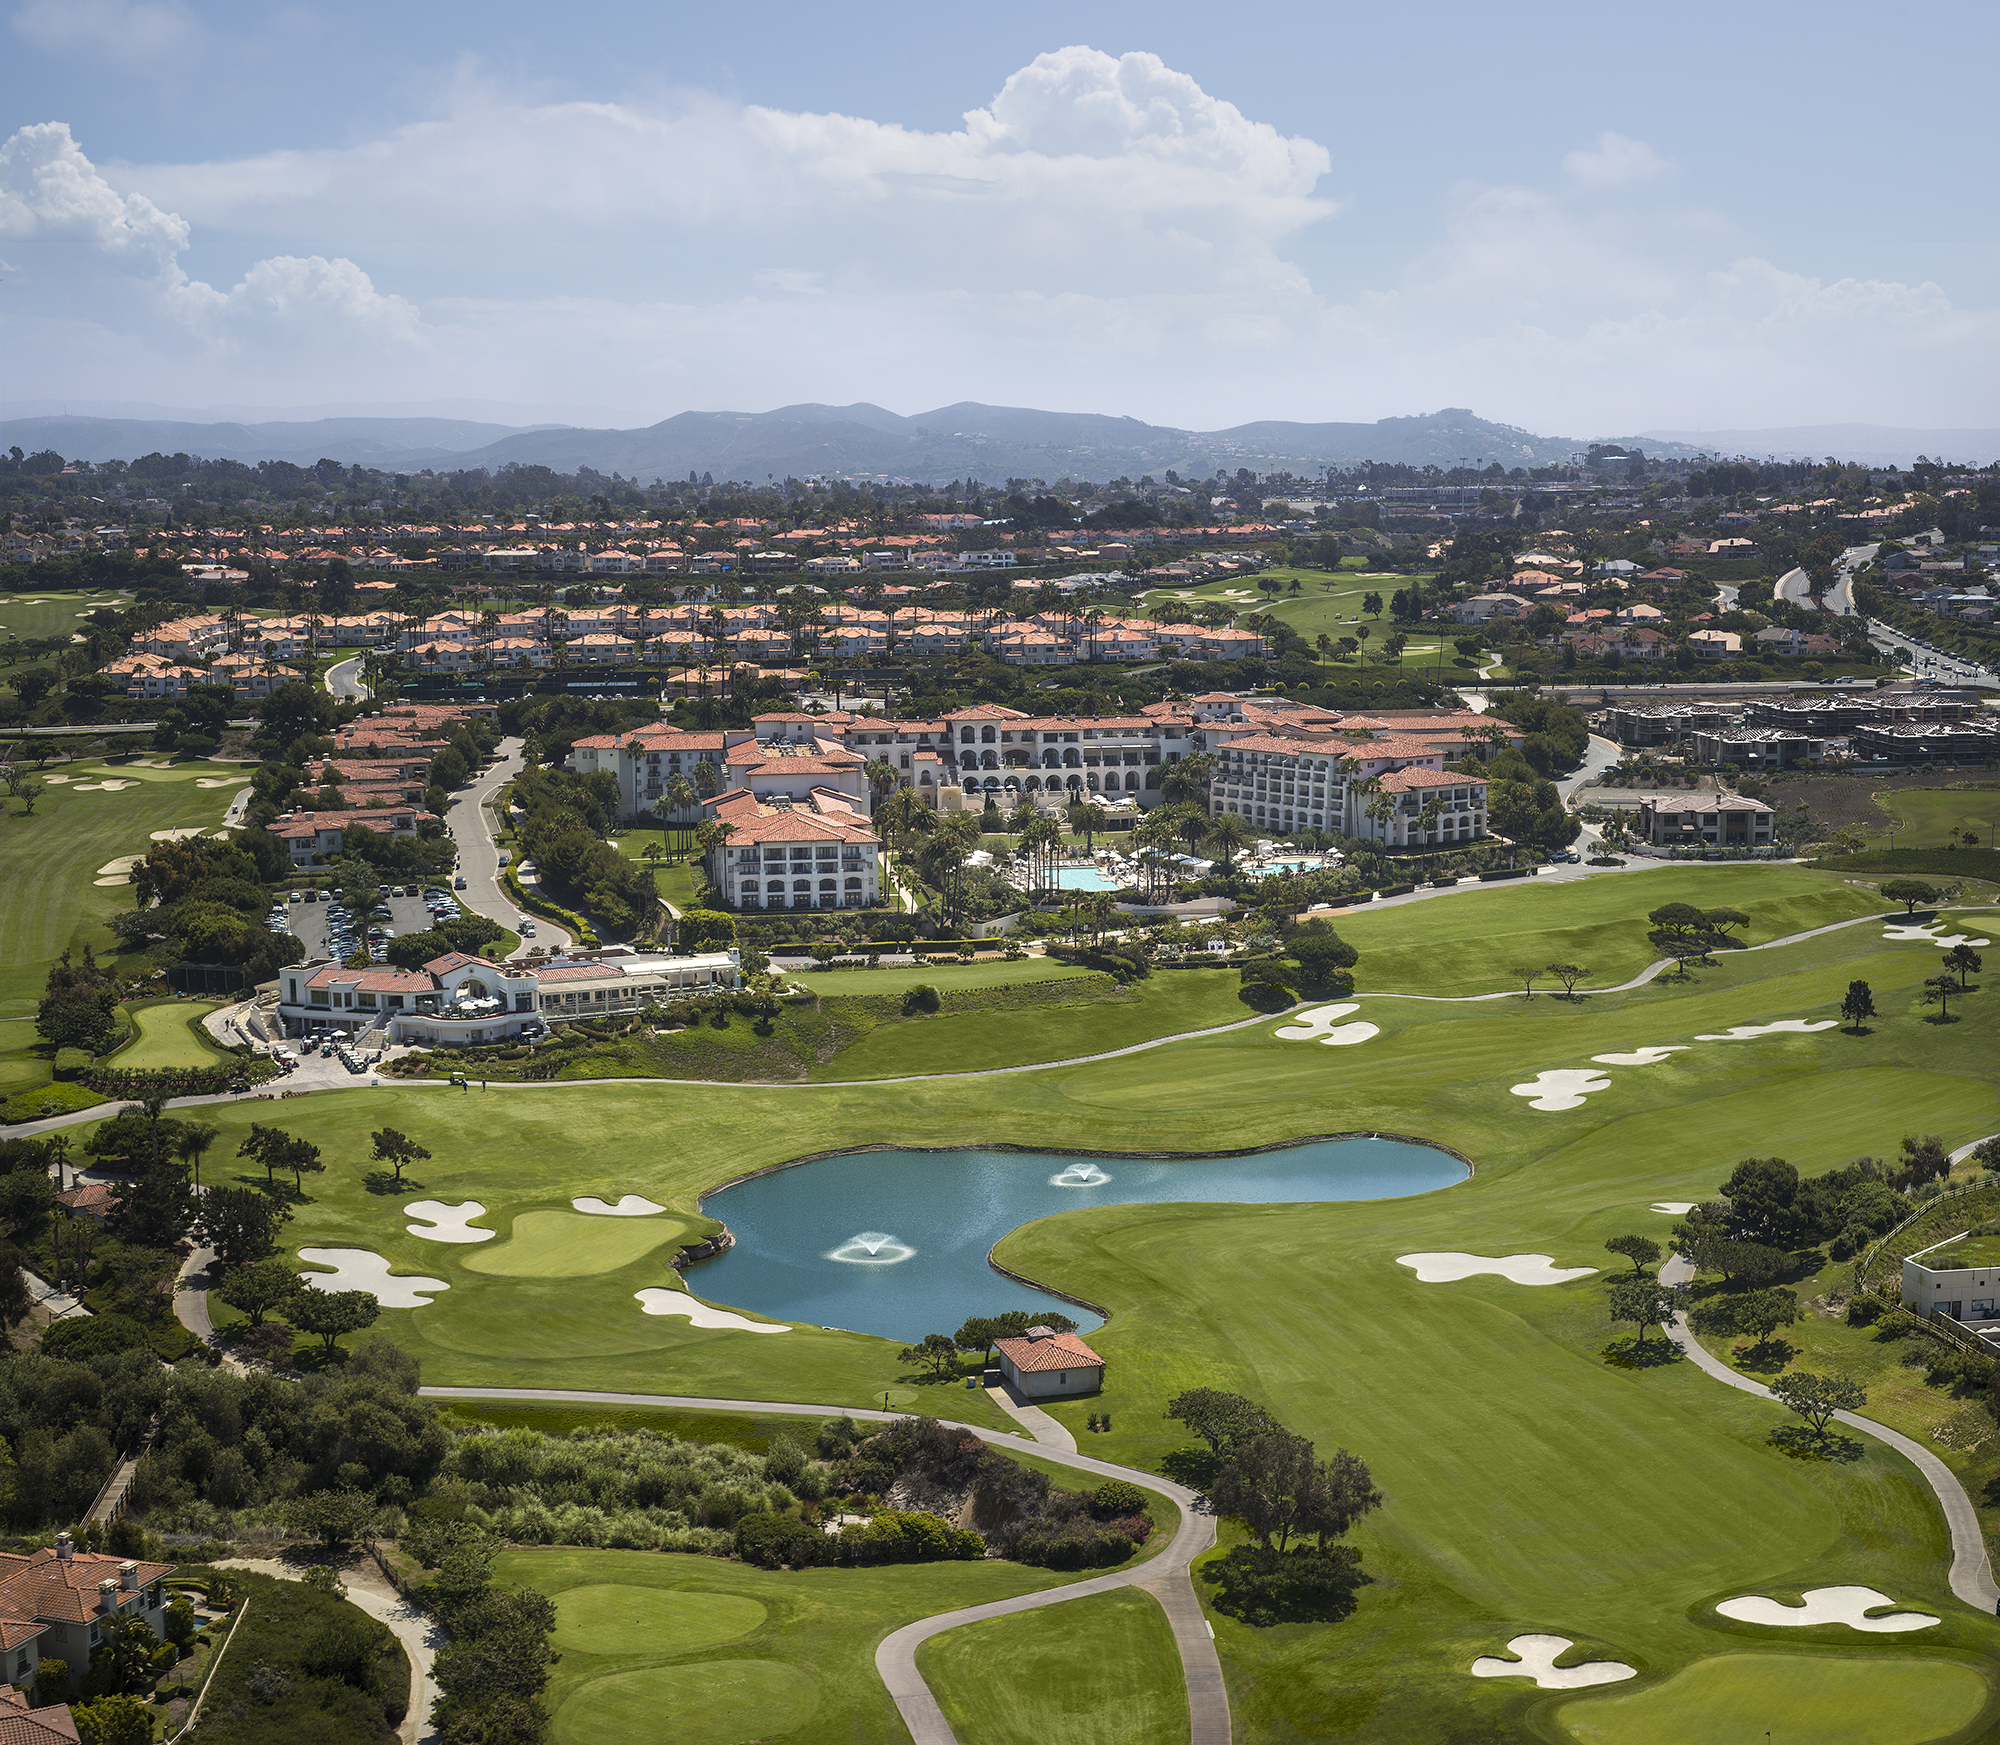 St Regis Monarch Beach Golf